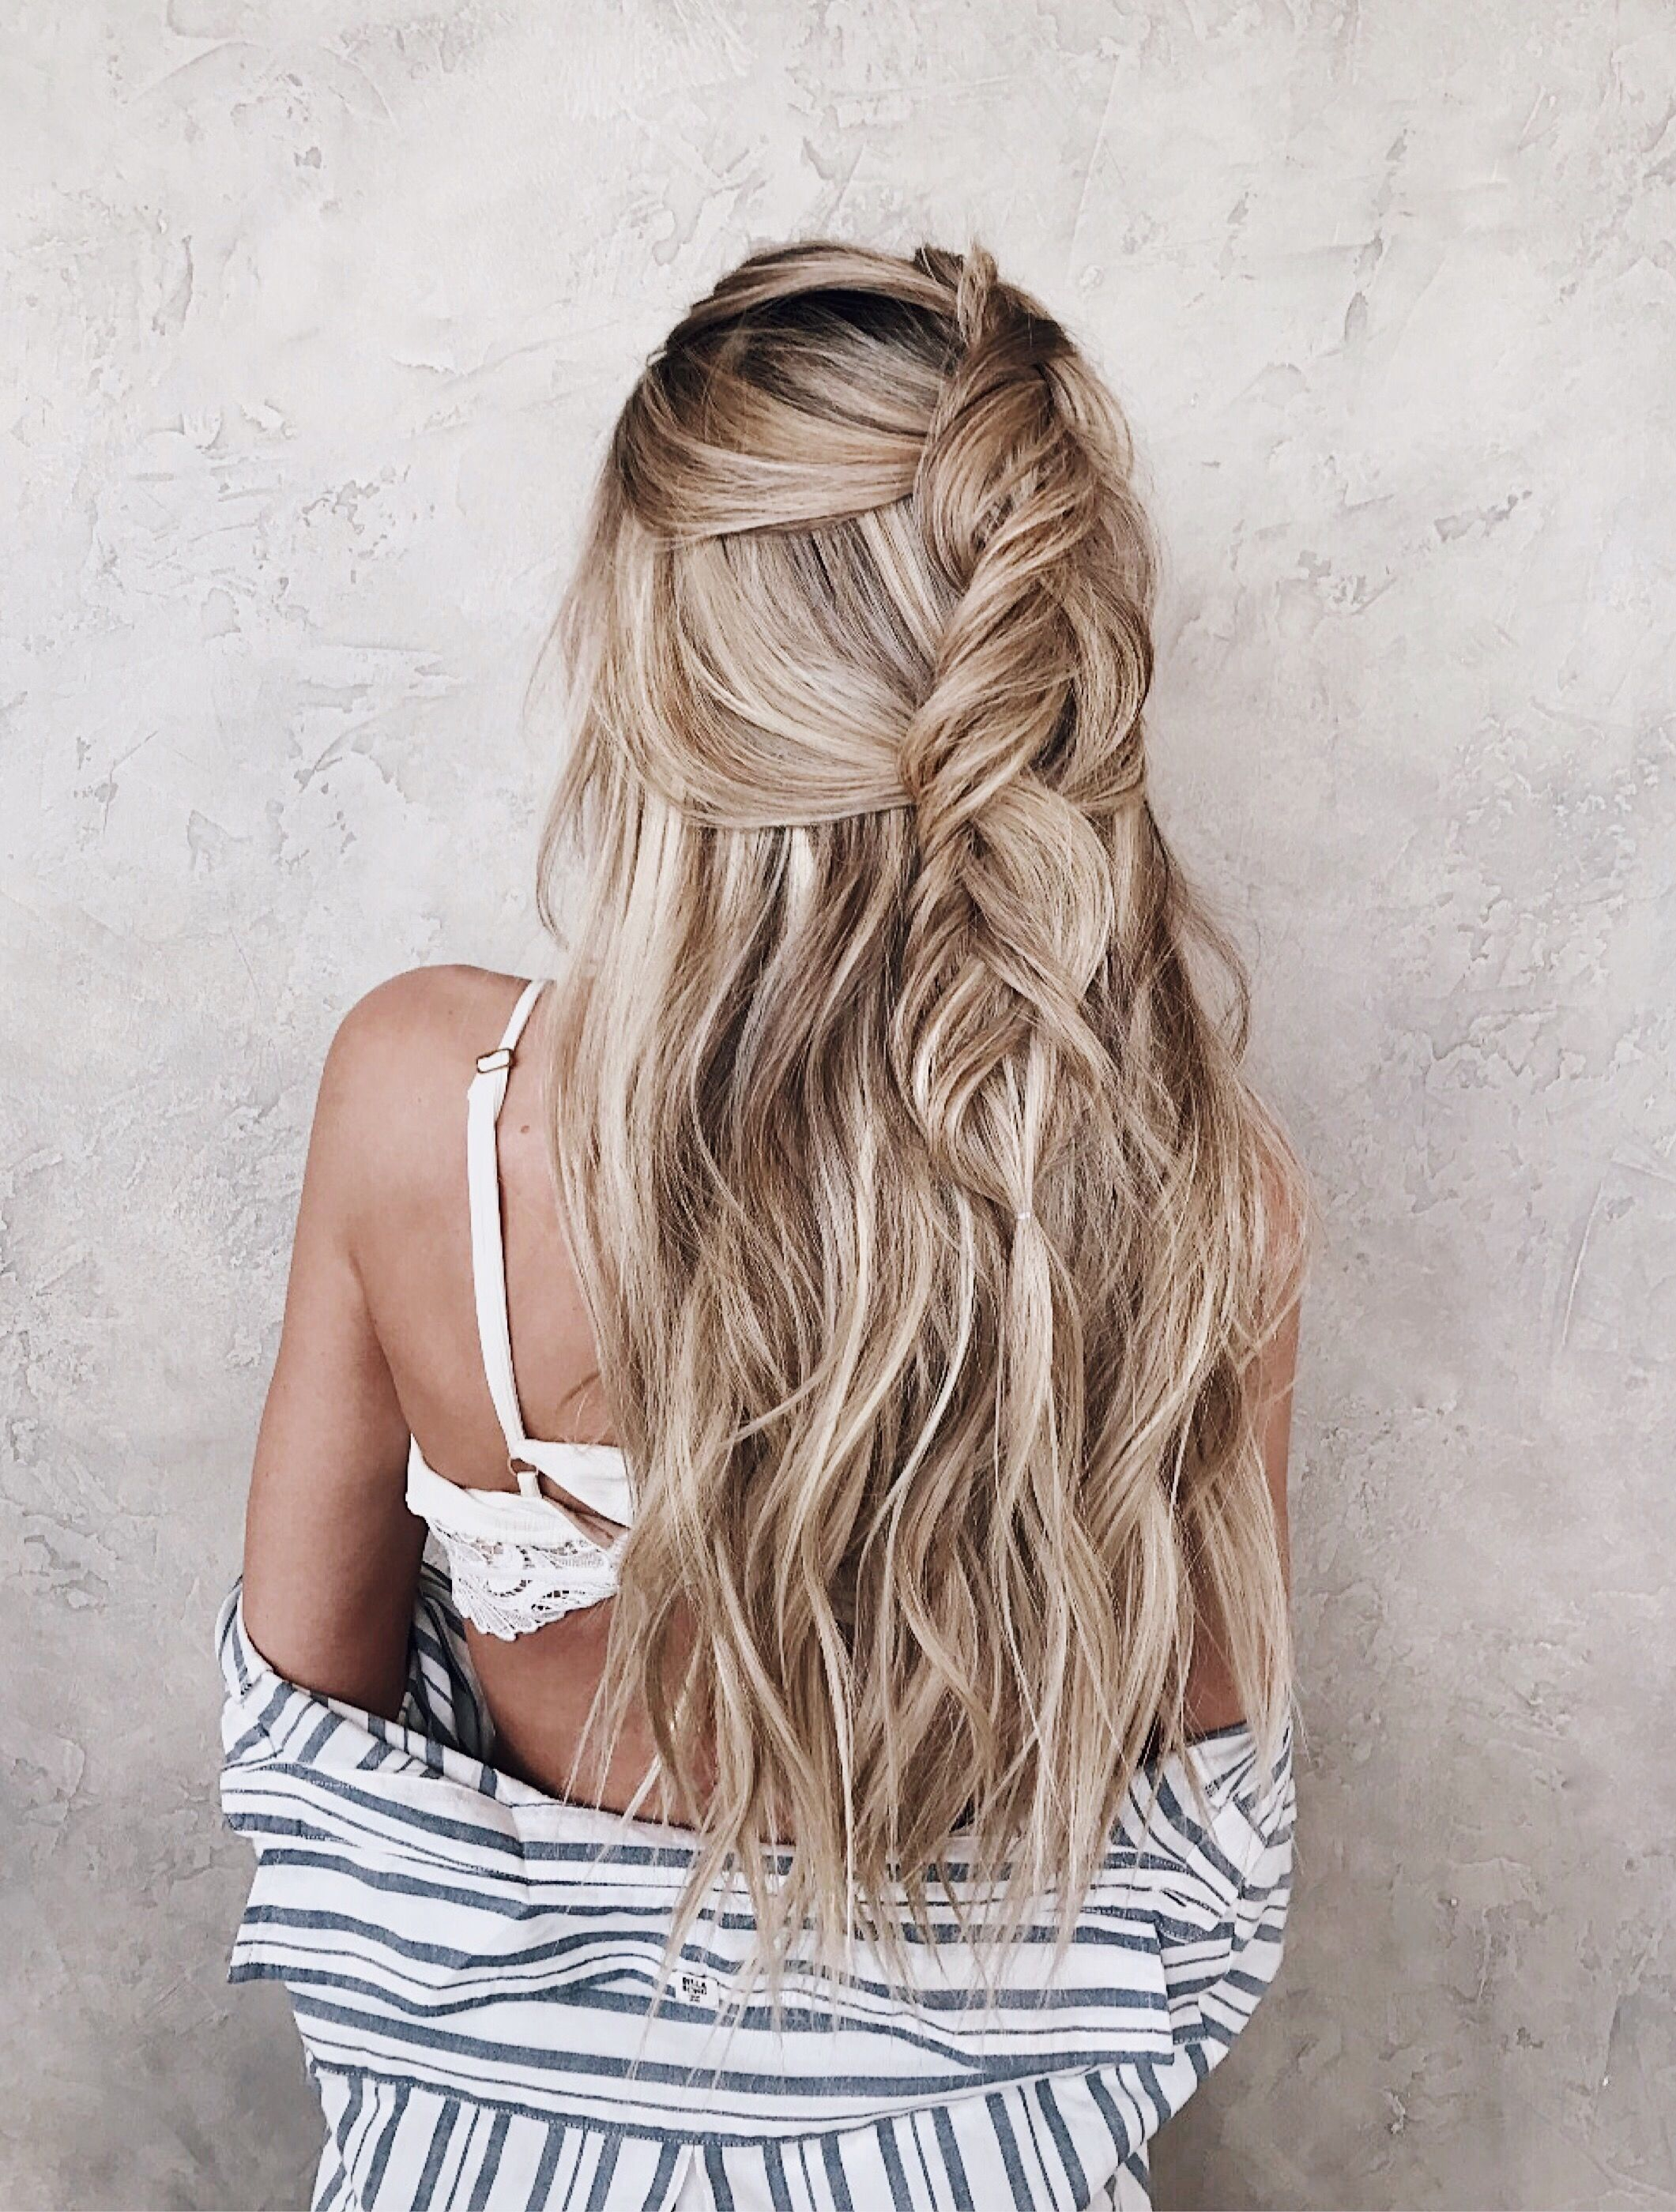 Beach Hairstyles Extraordinary Loose Blond Braid Half Up Hairstyle Beach Hair Fleurpinterest